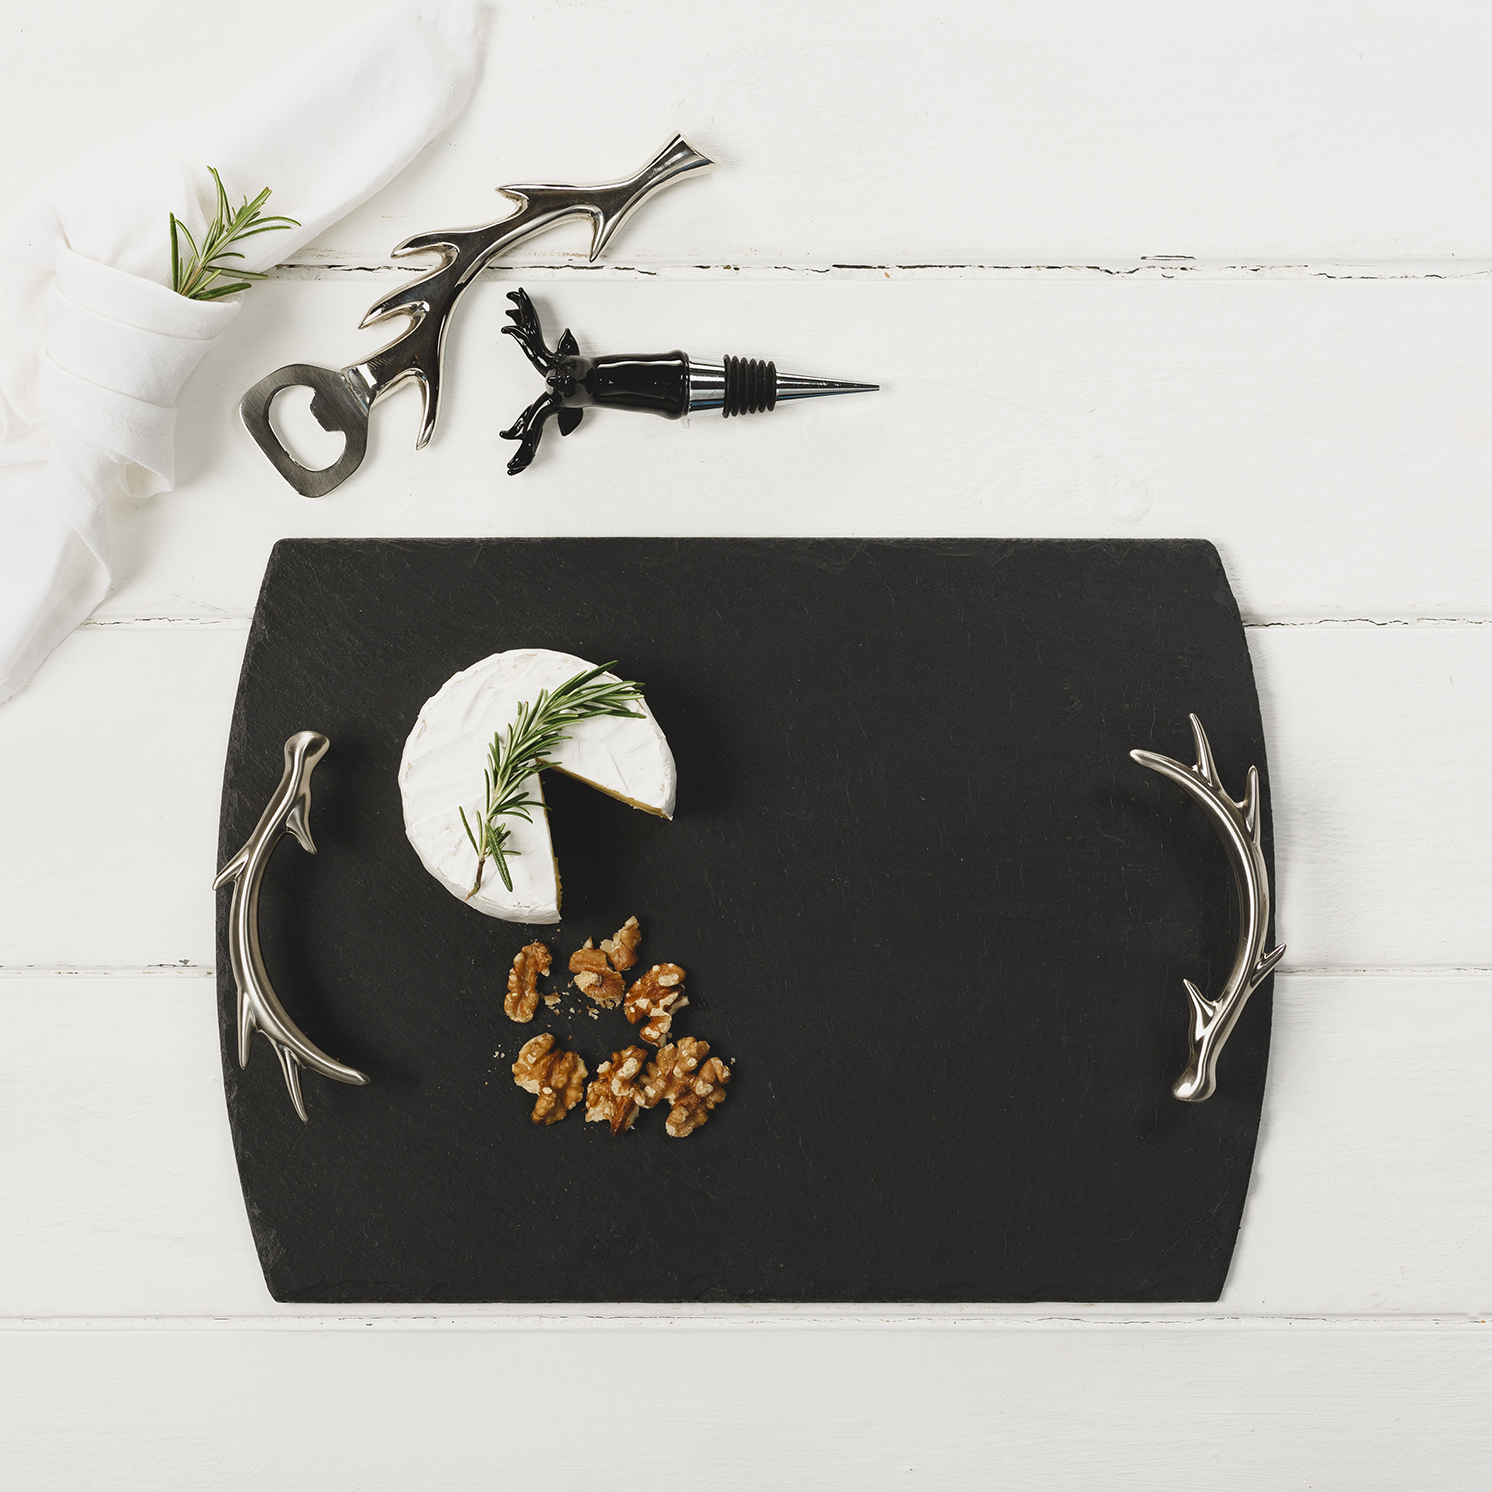 The Just Slate Company – Medium Slate Serving Tray with Antler Handles in Box